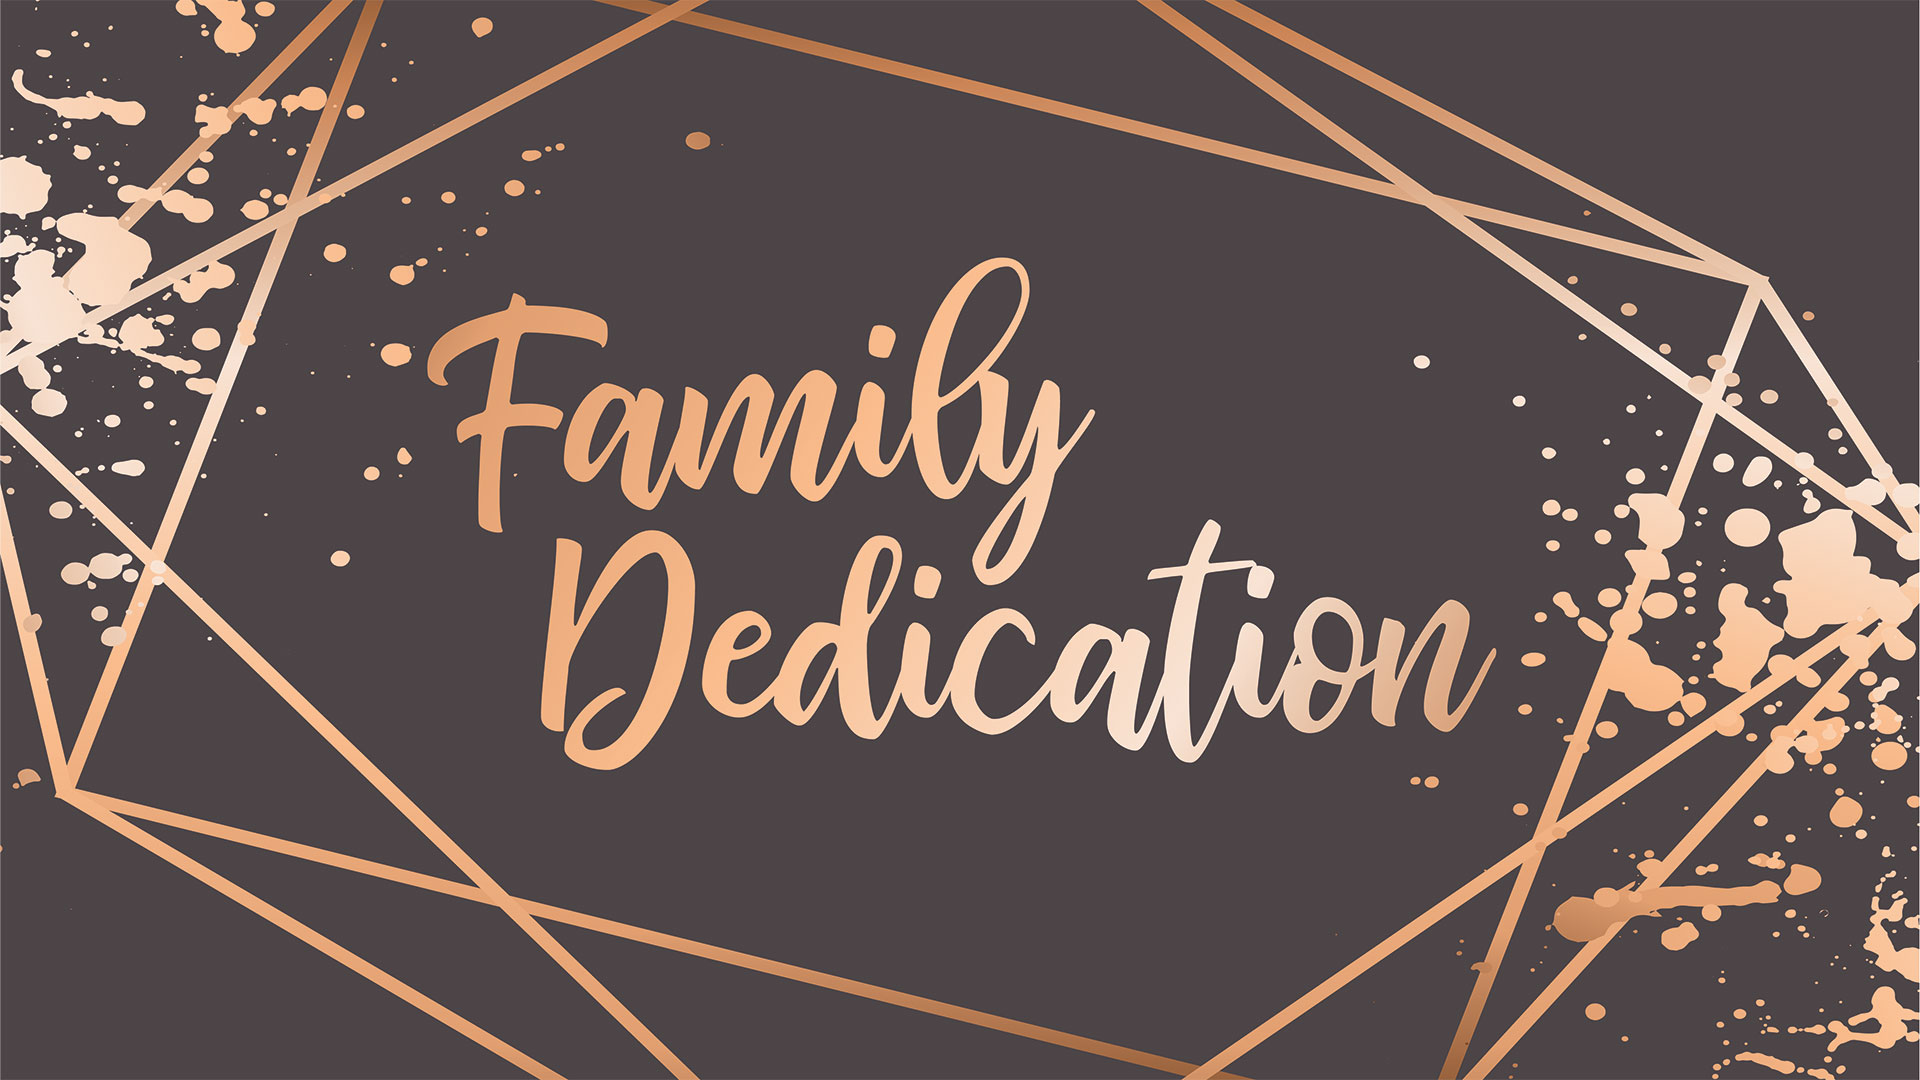 FamilyDedicationWIDE.jpg